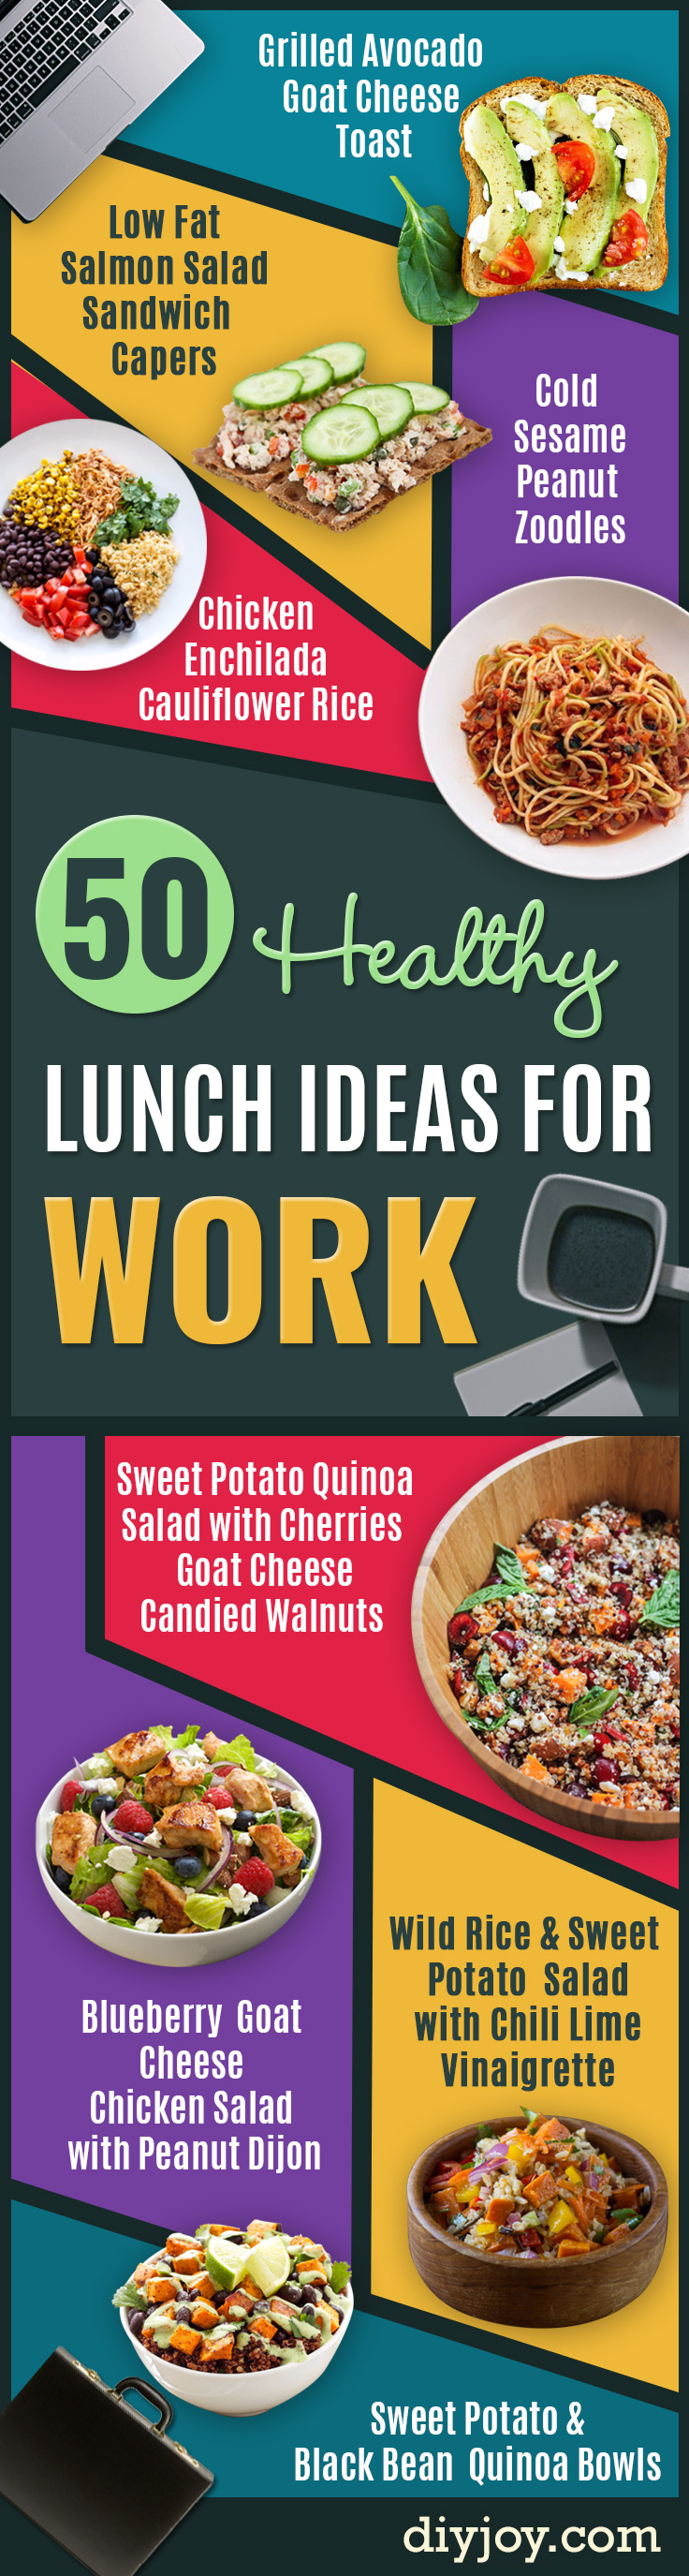 Healthy Lunch Ideas for Work - Quick and Easy Recipes You Can Pack for Lunches at the Office - Lowfat and Simple Ideas for Eating on the Job - Microwave, No Heat, Mason Jar Salads, Sandwiches, Wraps, Soups and Bowls